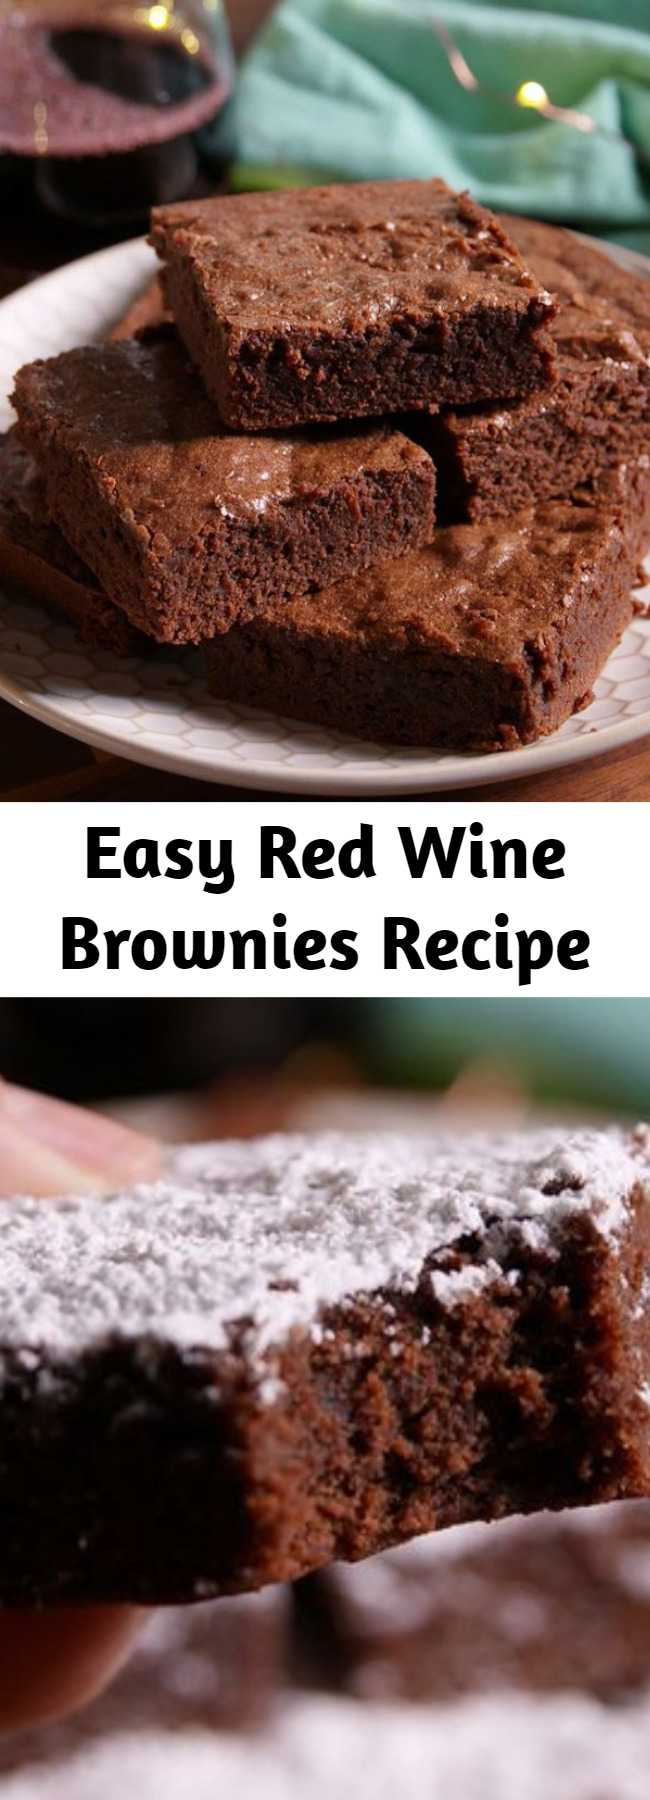 Easy Red Wine Brownies Recipe - Taking wine-and-chocolate night to a whole new fudgy level.